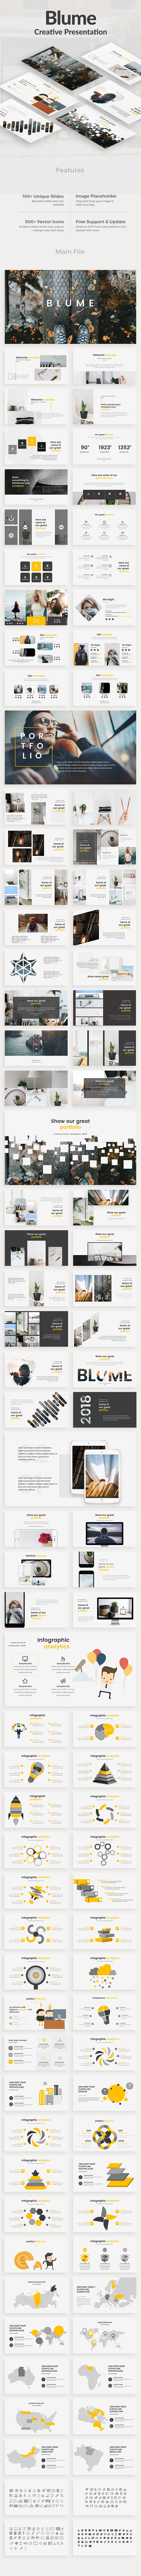 GraphicRiver Blume Creative Powerpoint Template 20992175